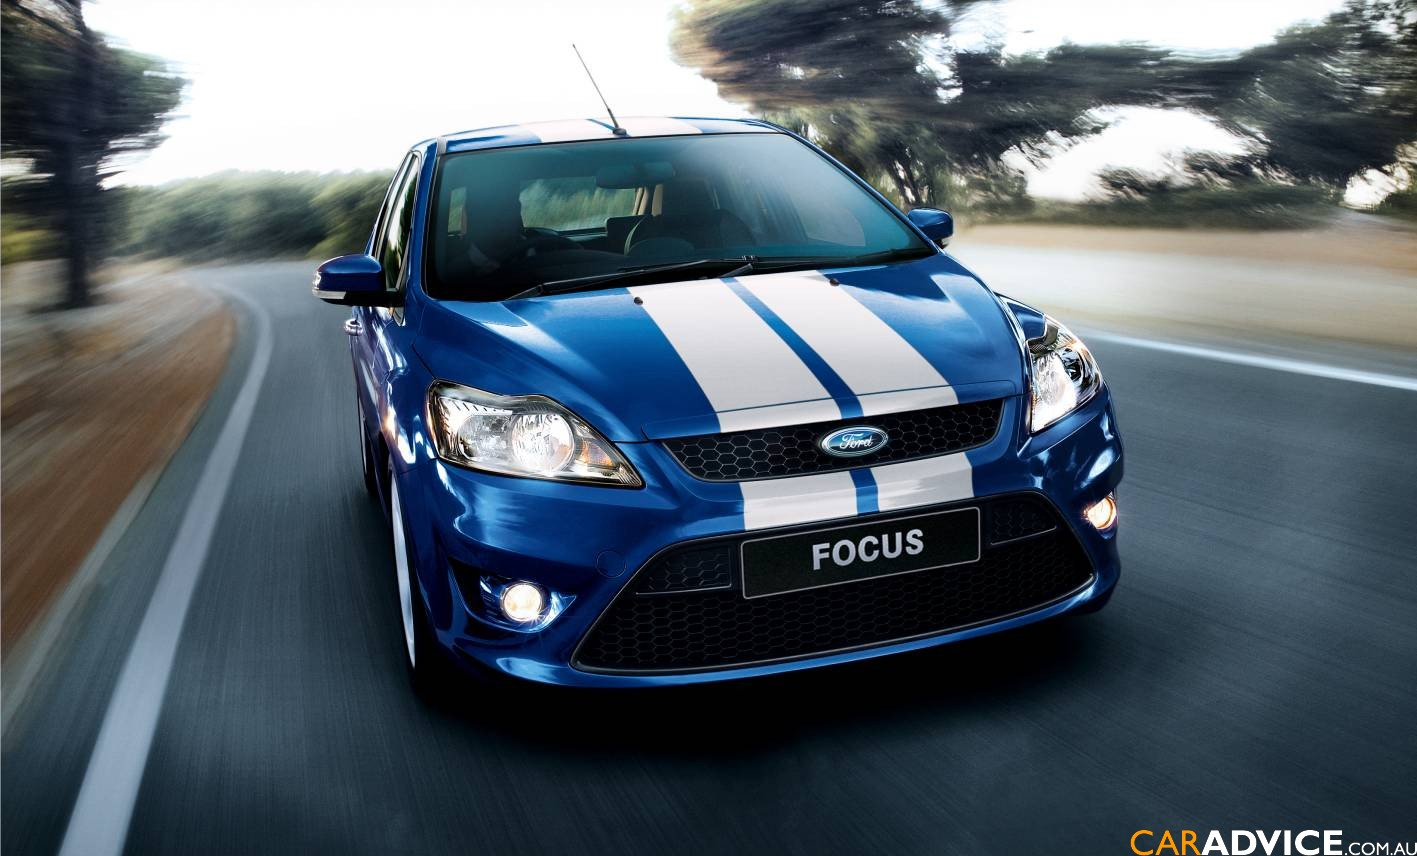 2009 Ford Focus Xr5 Turbo Specs Photos Caradvice